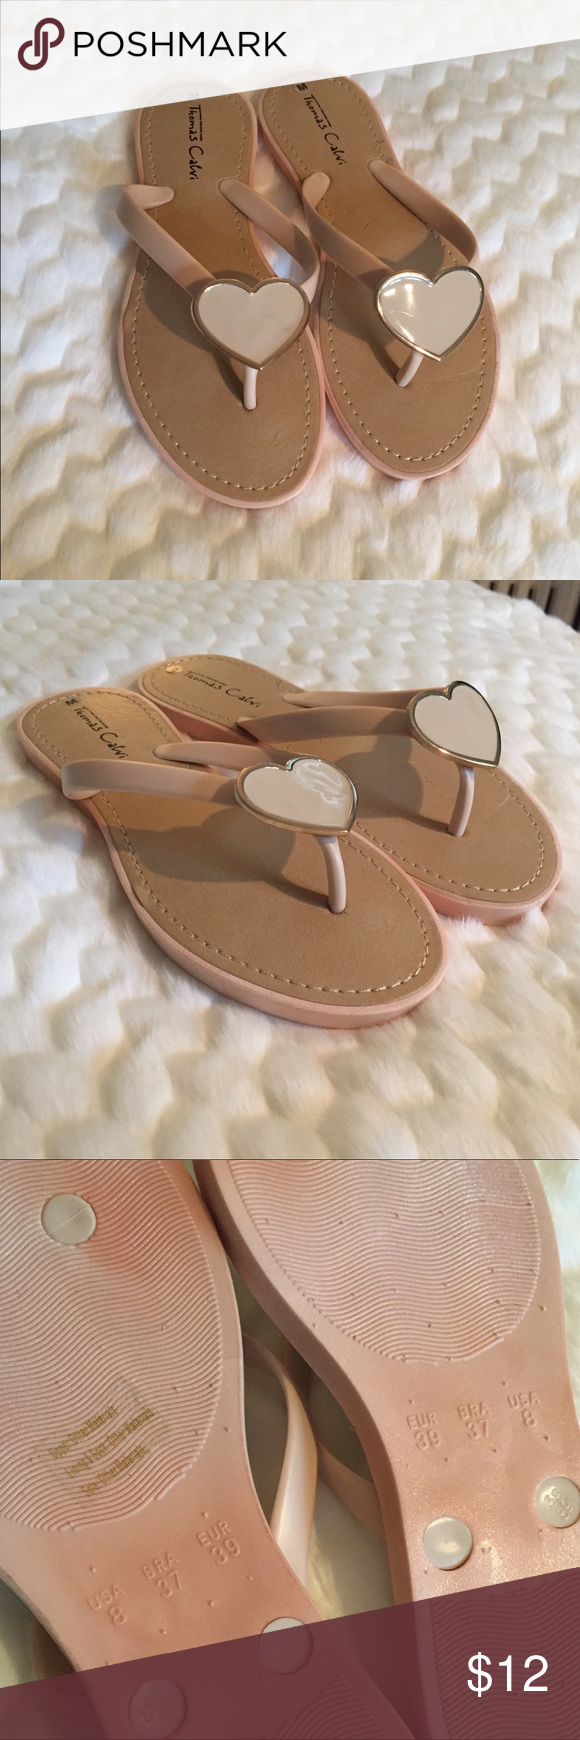 f95e36db716f Thomas Calvi Nude Sandals NWOT! These adorable nude flip flops feature a  shiny heart accent for a stylish touch. Summer is coming